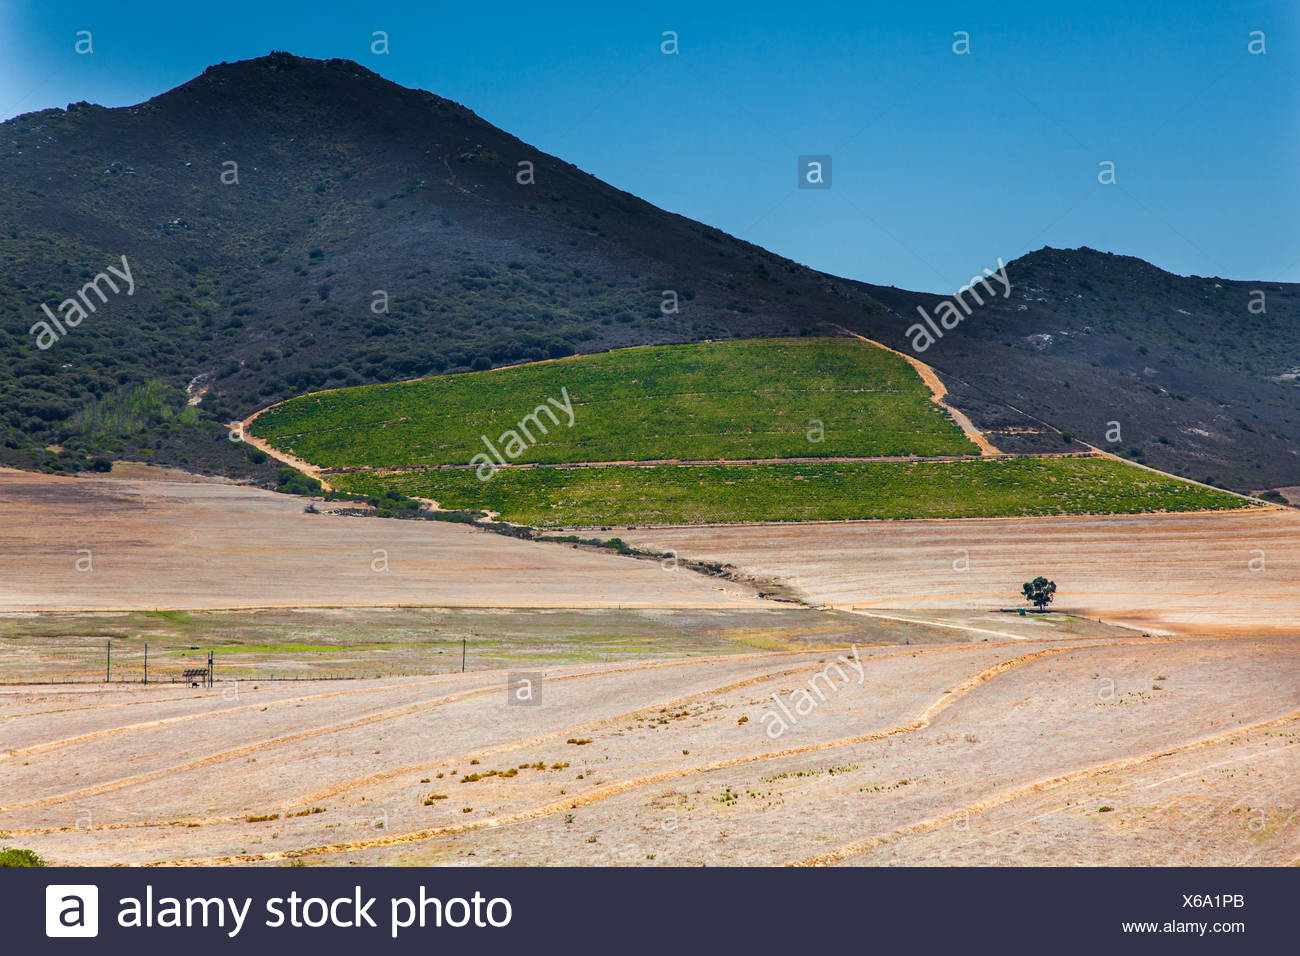 Landscape at Darling South Africa - Stock Image